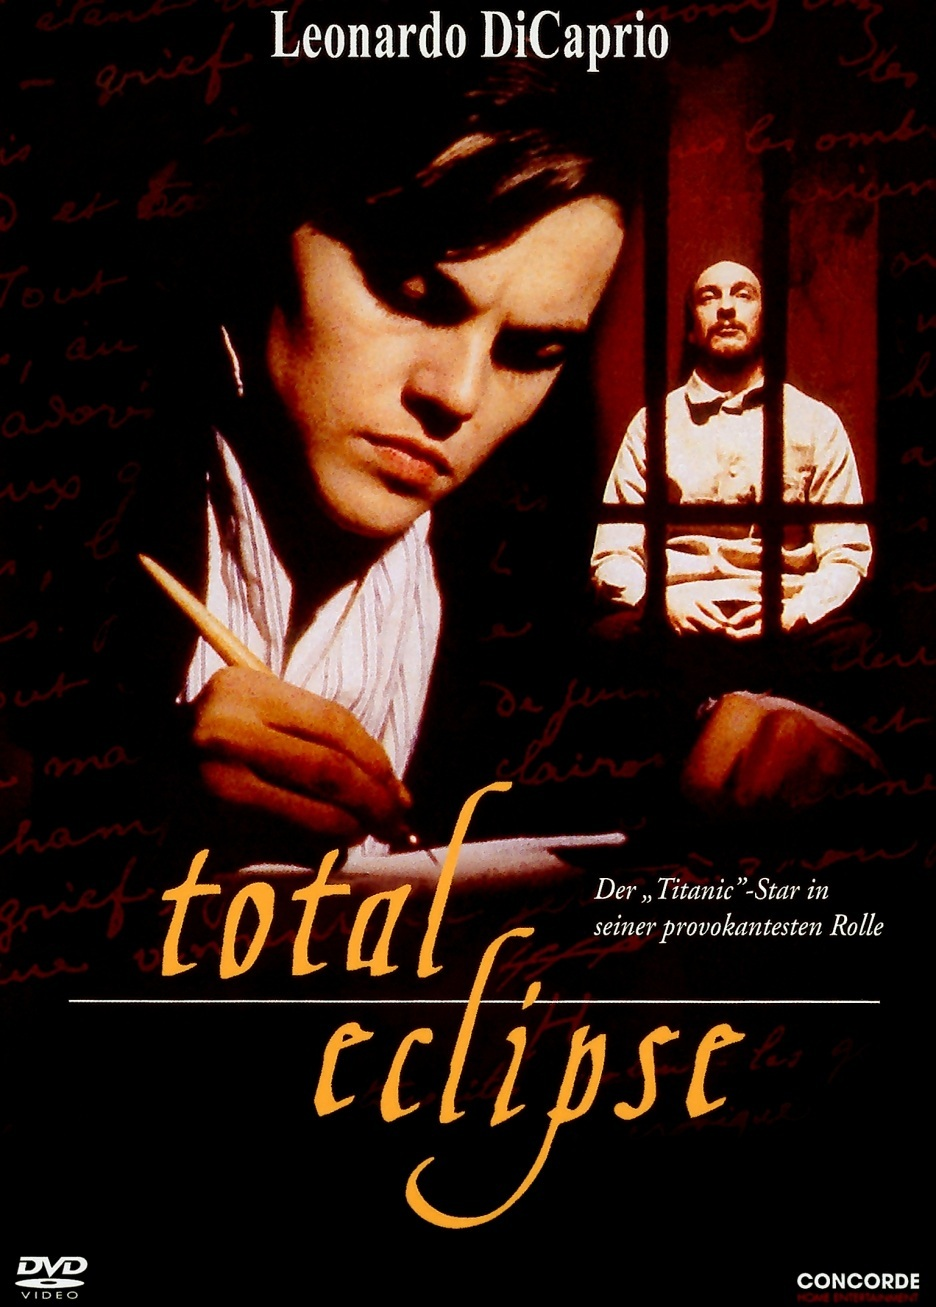 full-total-eclipse-poster-movie-800330922